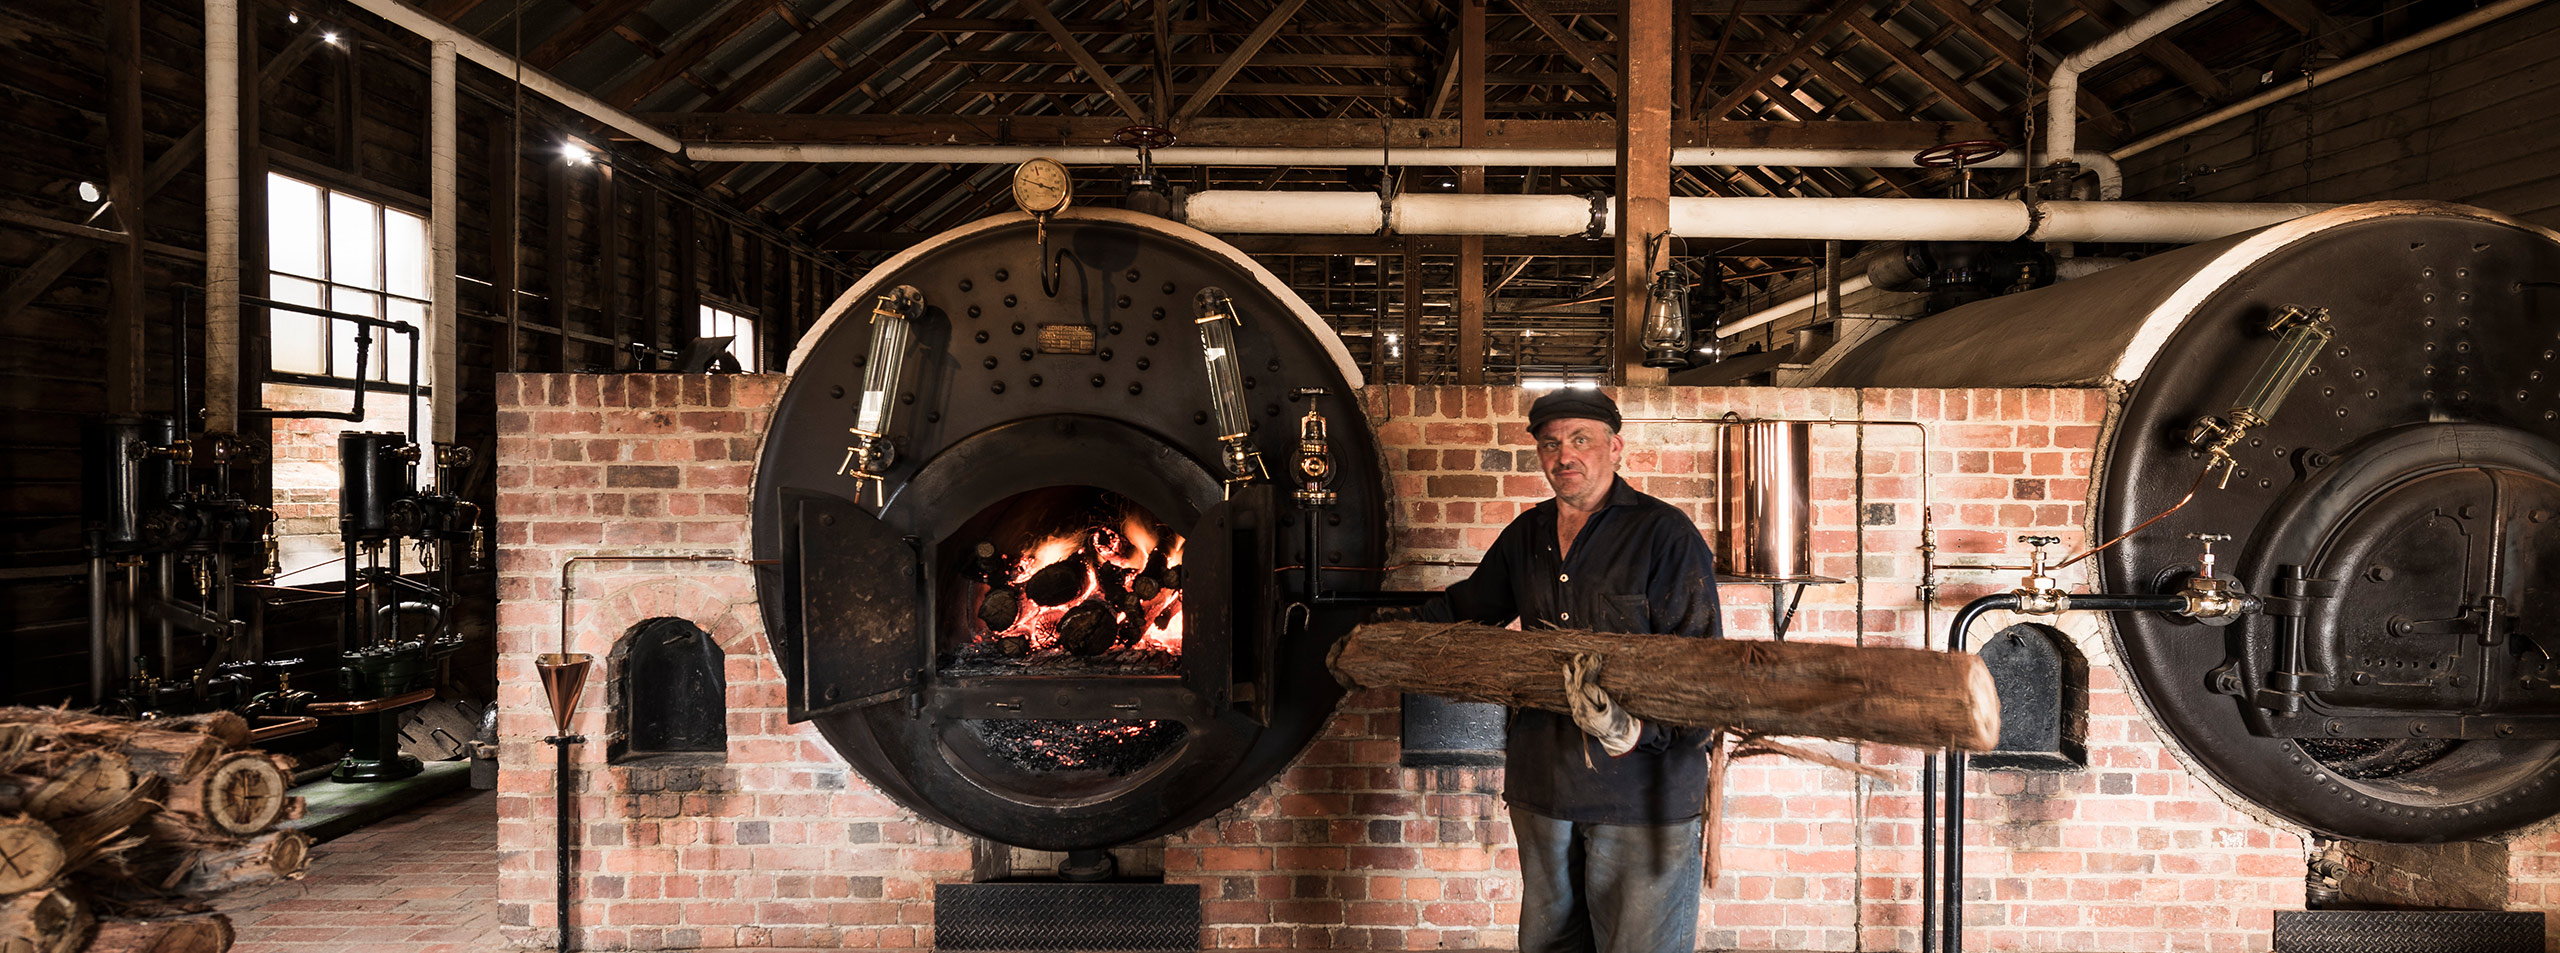 Sovereign Hill Blacksmith